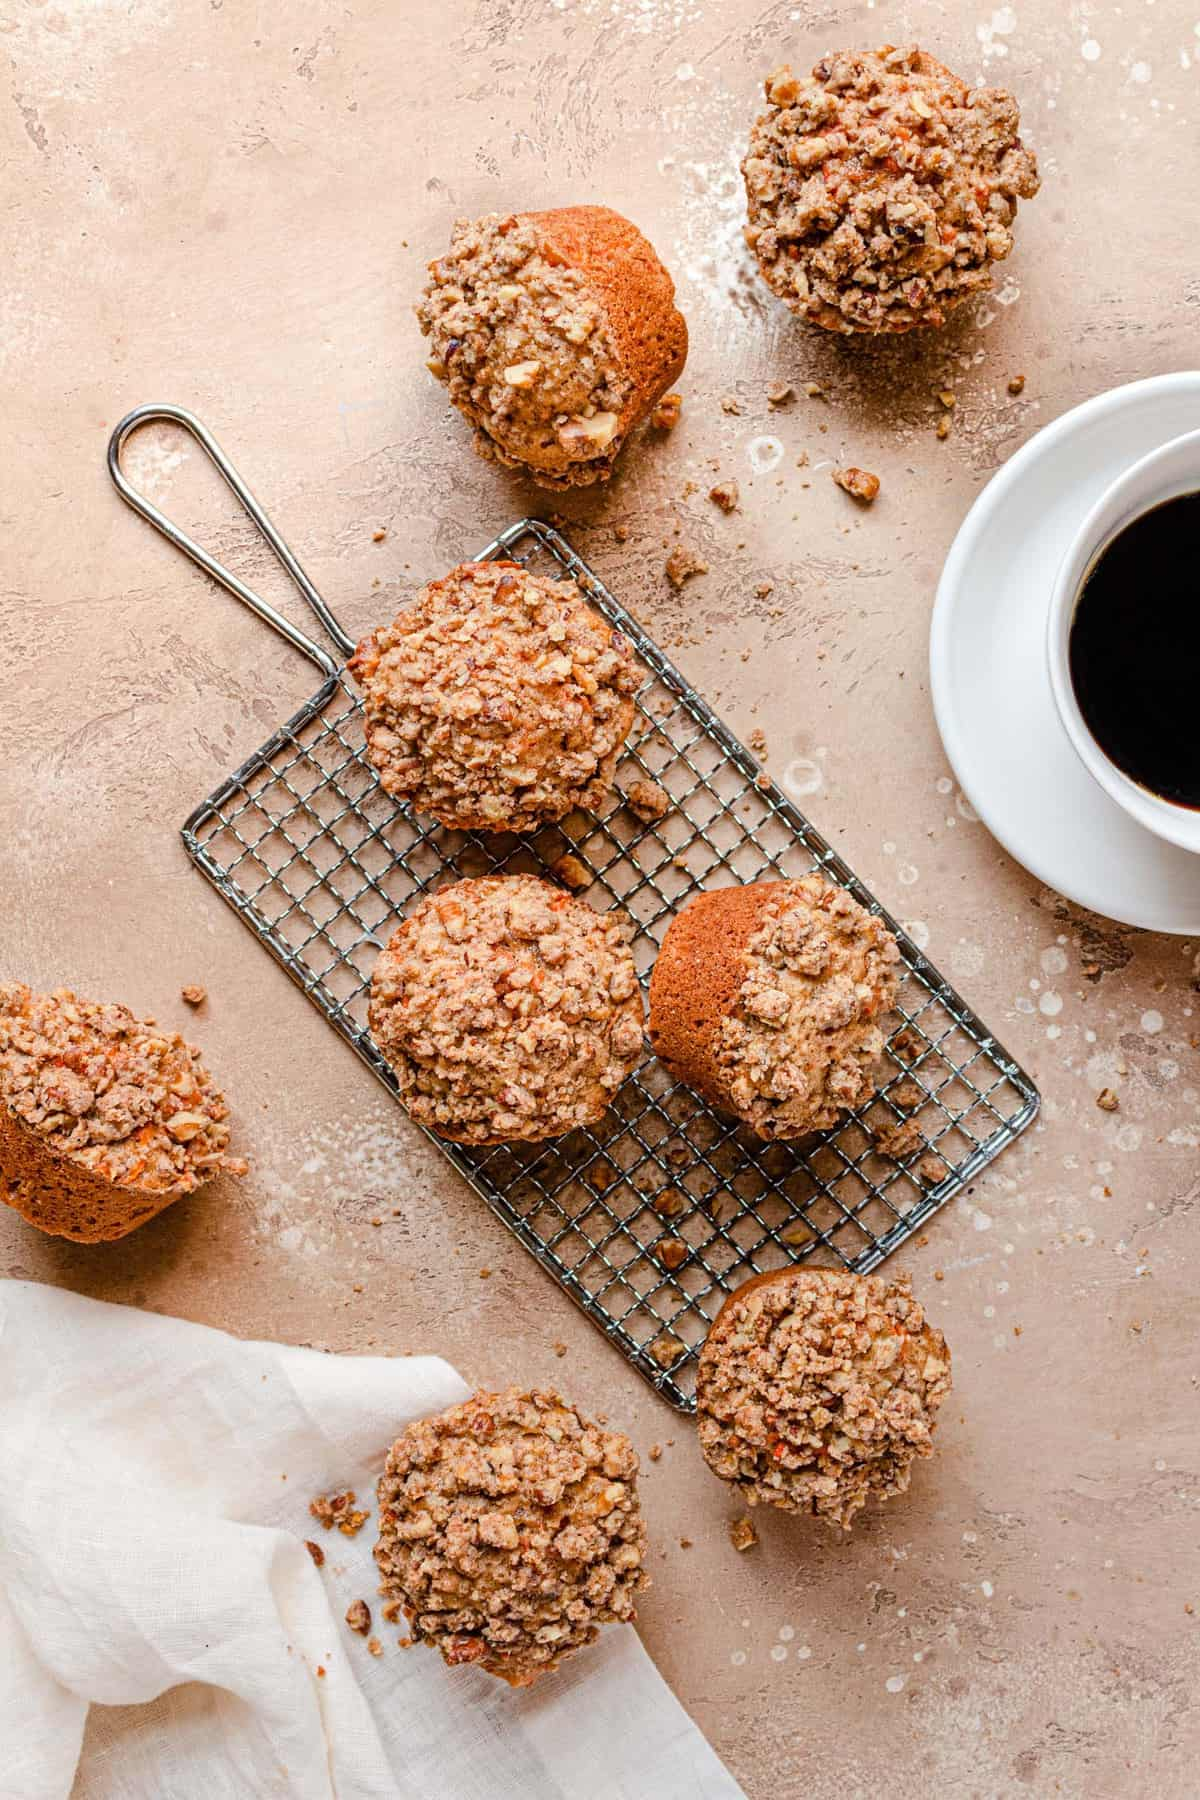 Carrot muffins with nut streusel recipe.